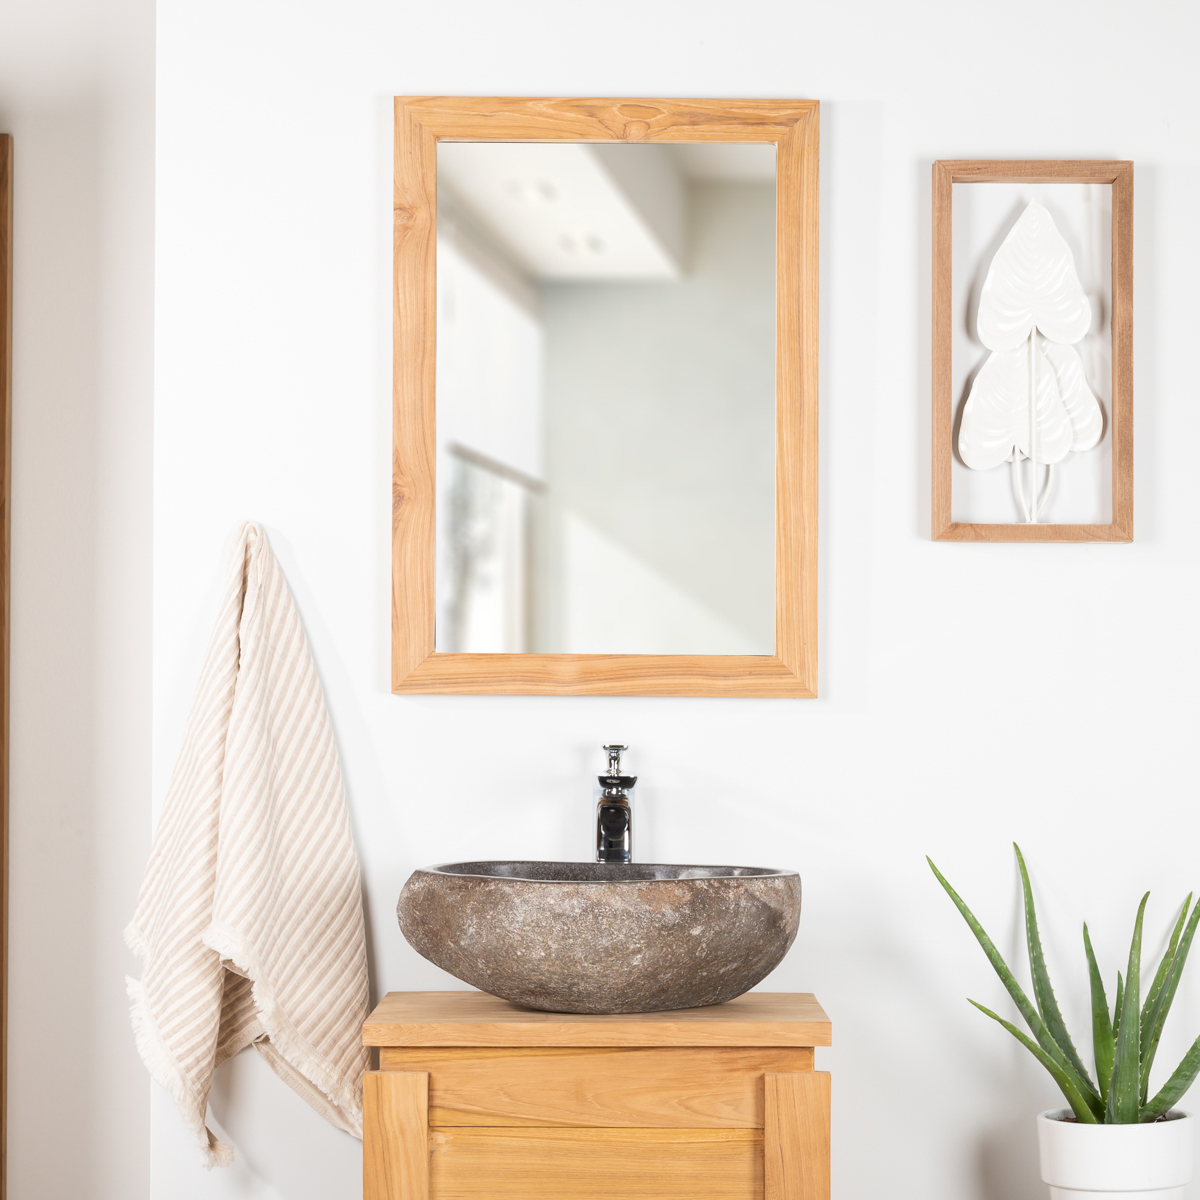 Miroir rectangle en teck massif 20x20